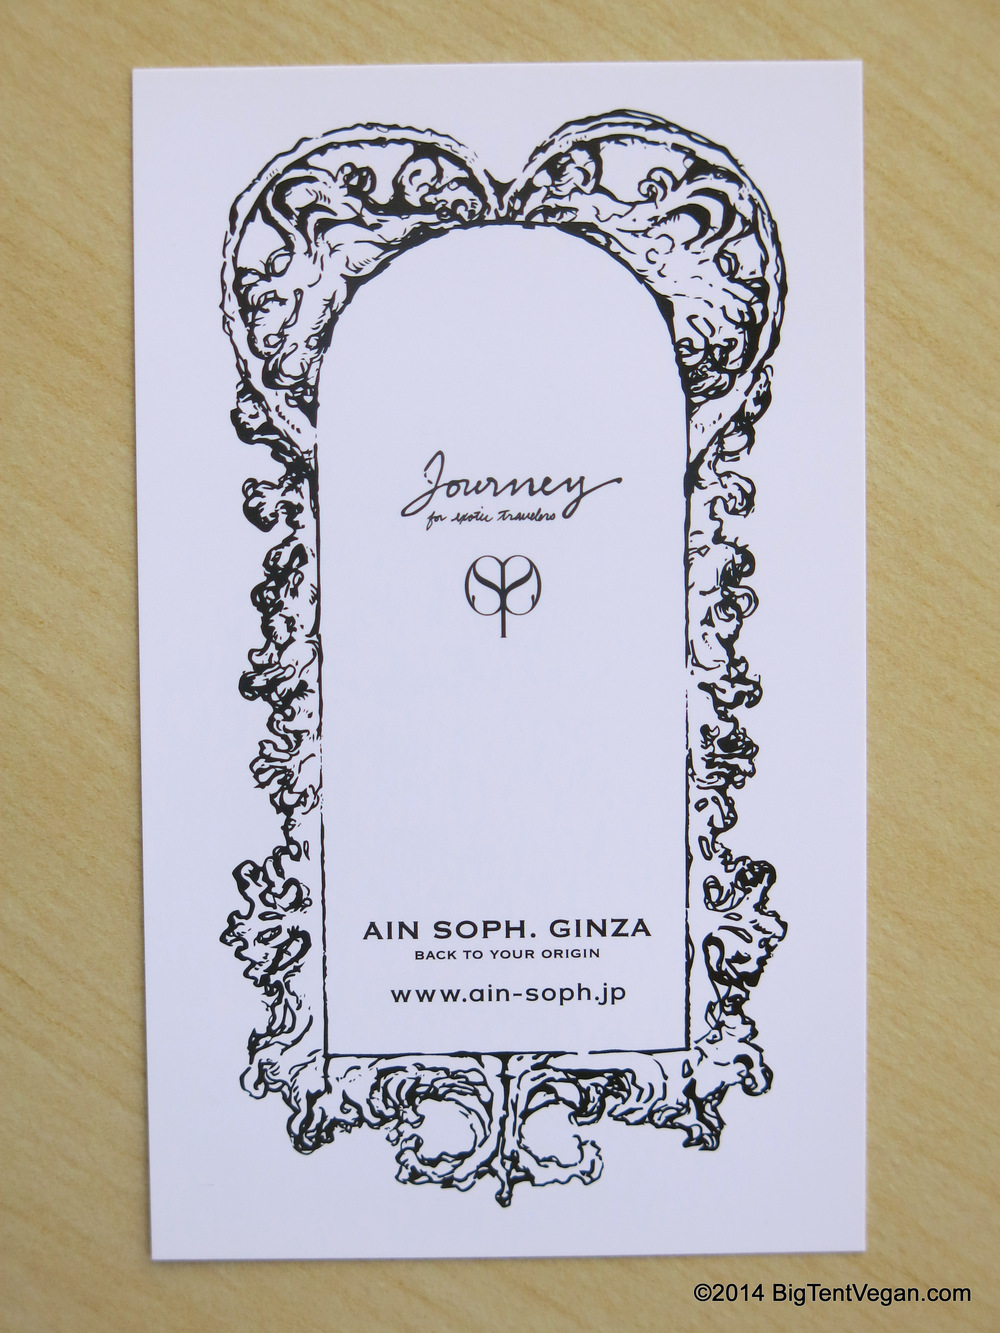 Ain Soph Journey business card